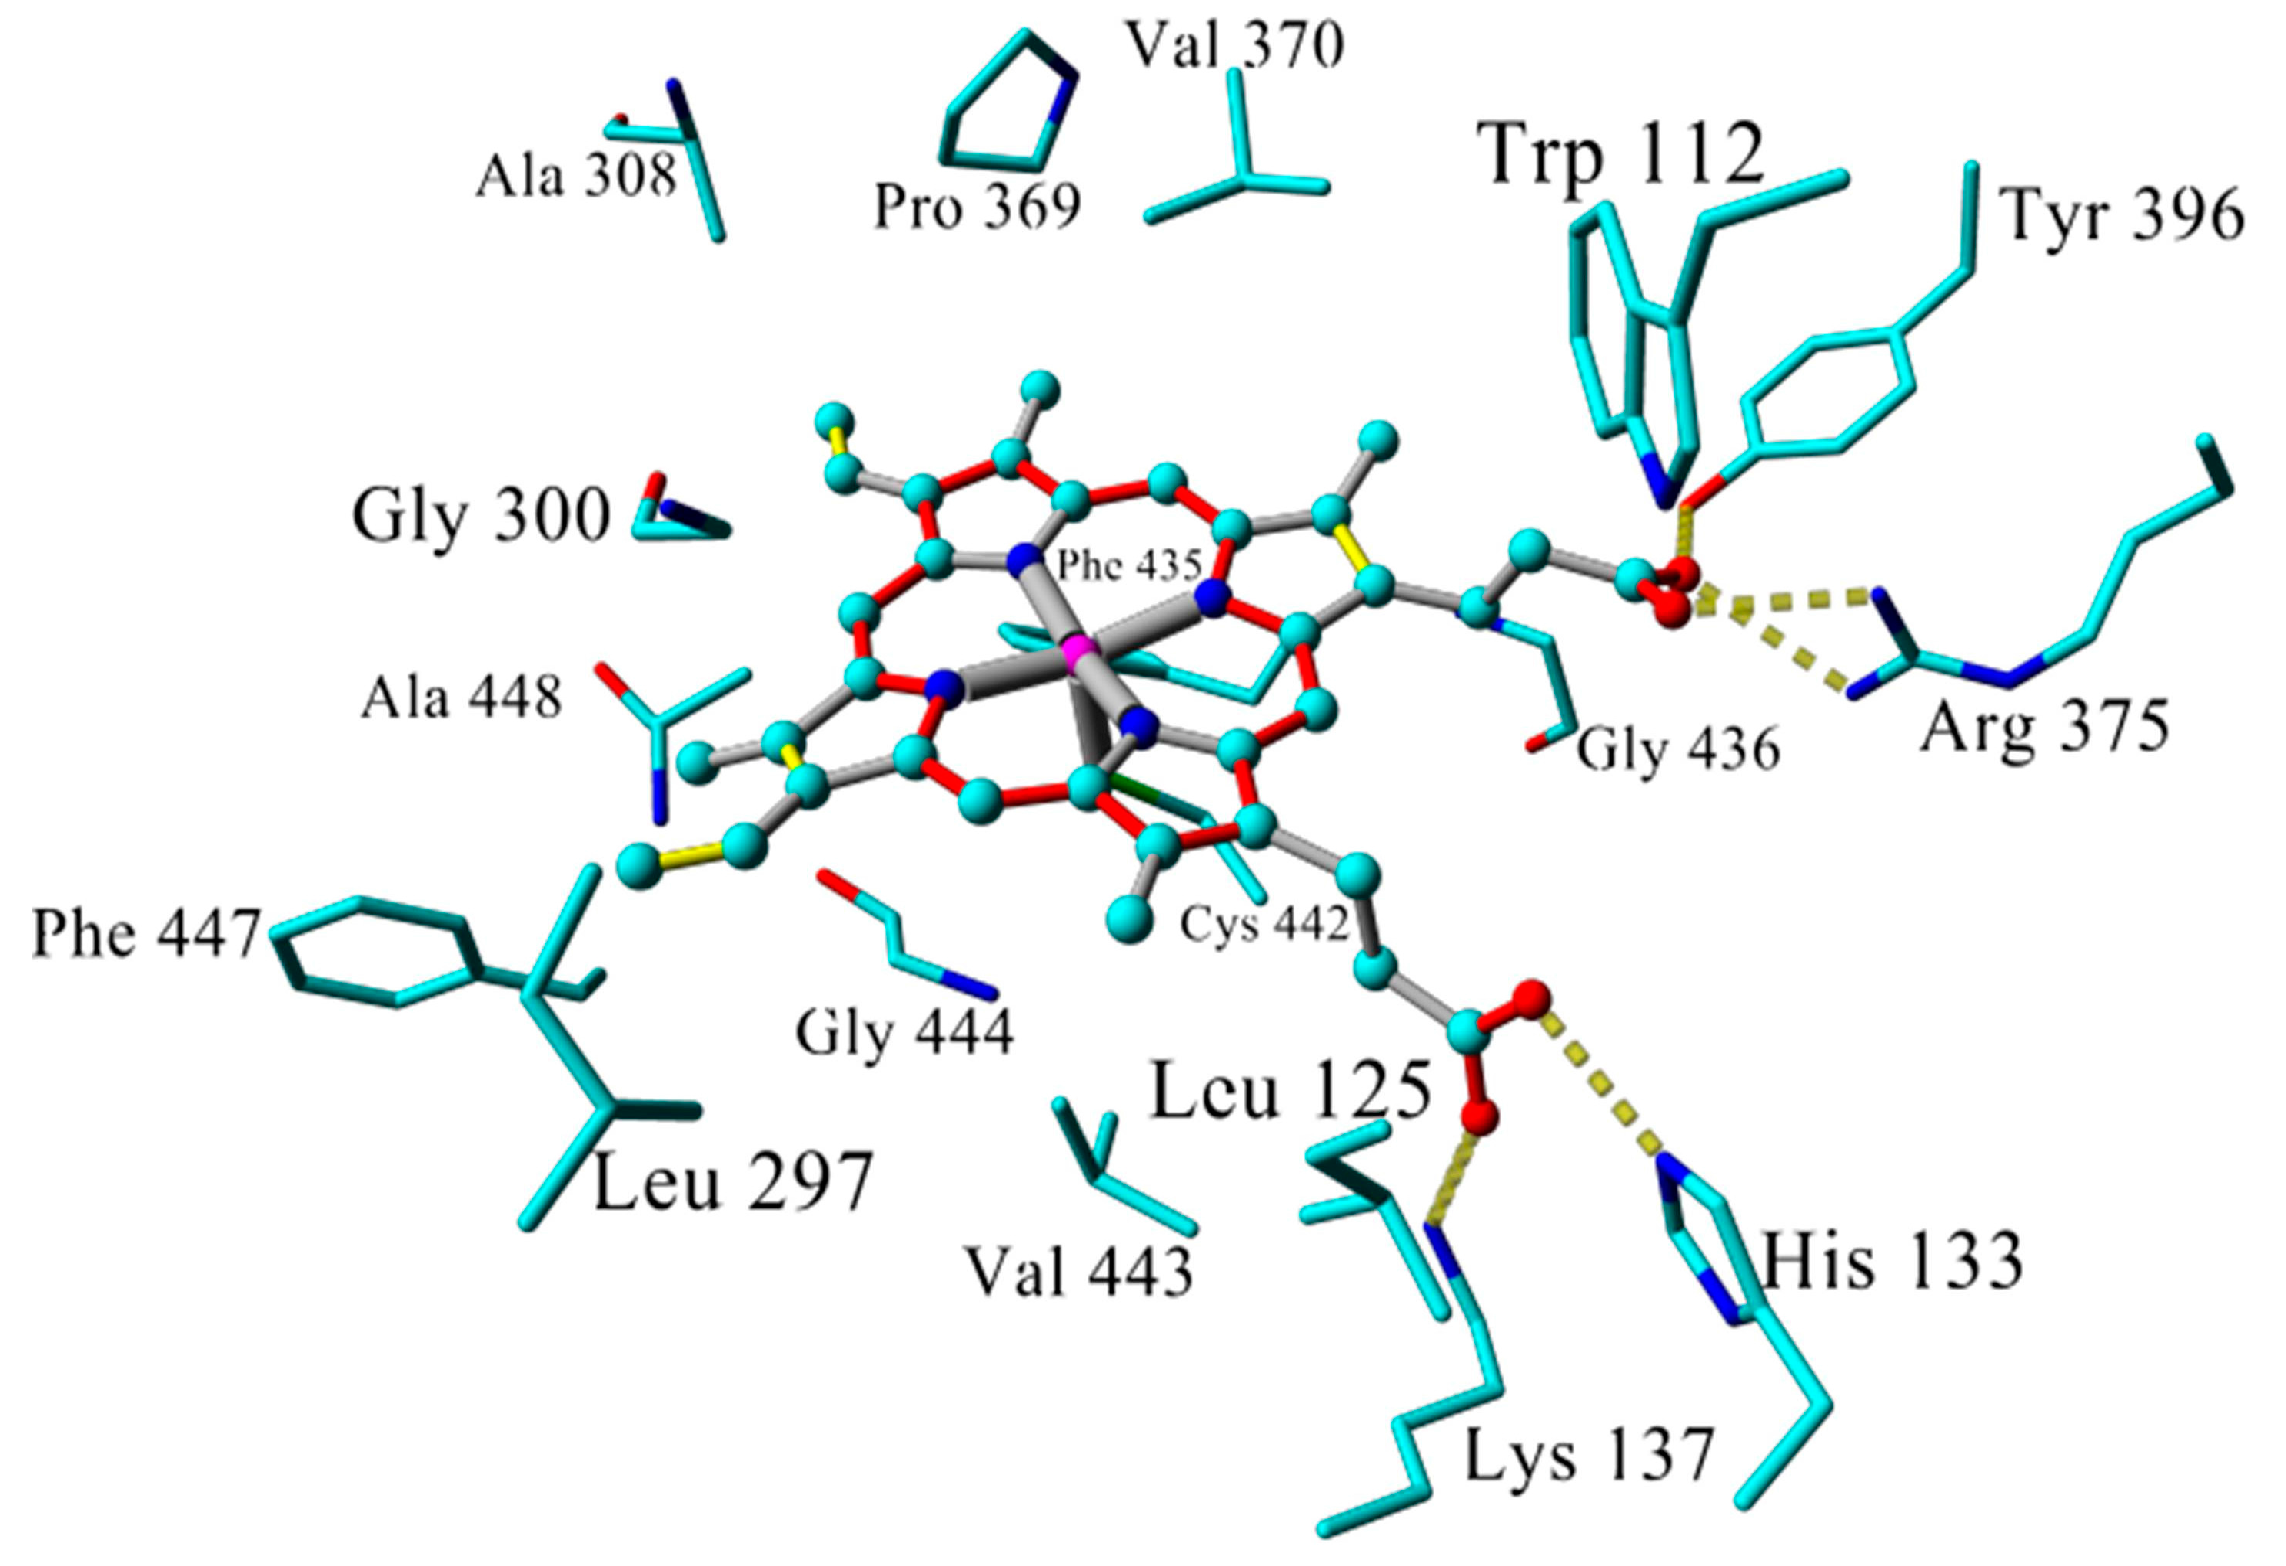 Molecules | Free Full-Text | Improved Homology Model of the